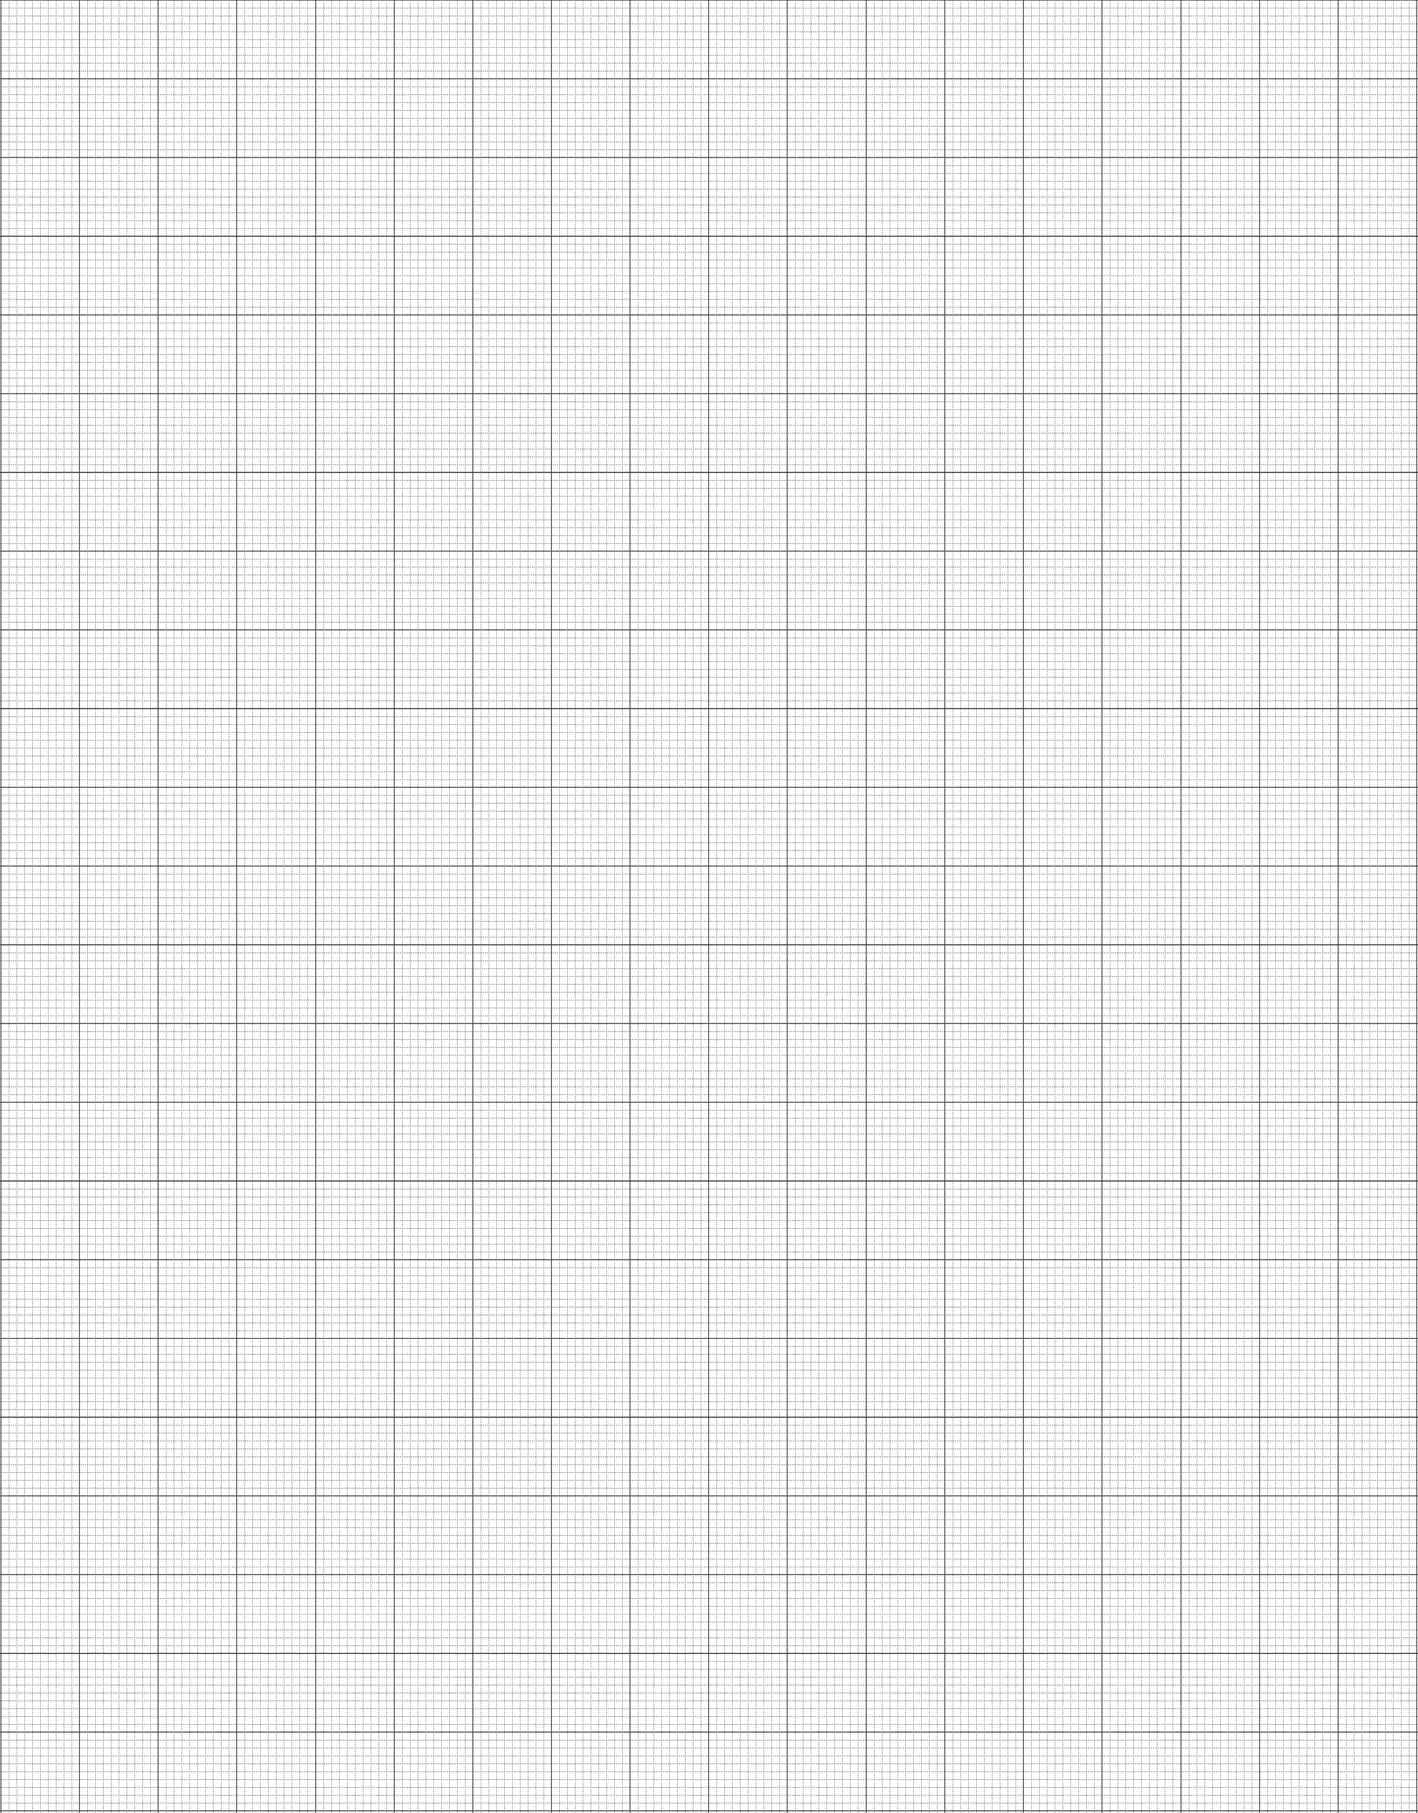 20 square per inch Graph Paper for Photographic Applications – 1 4 Graph Paper Template